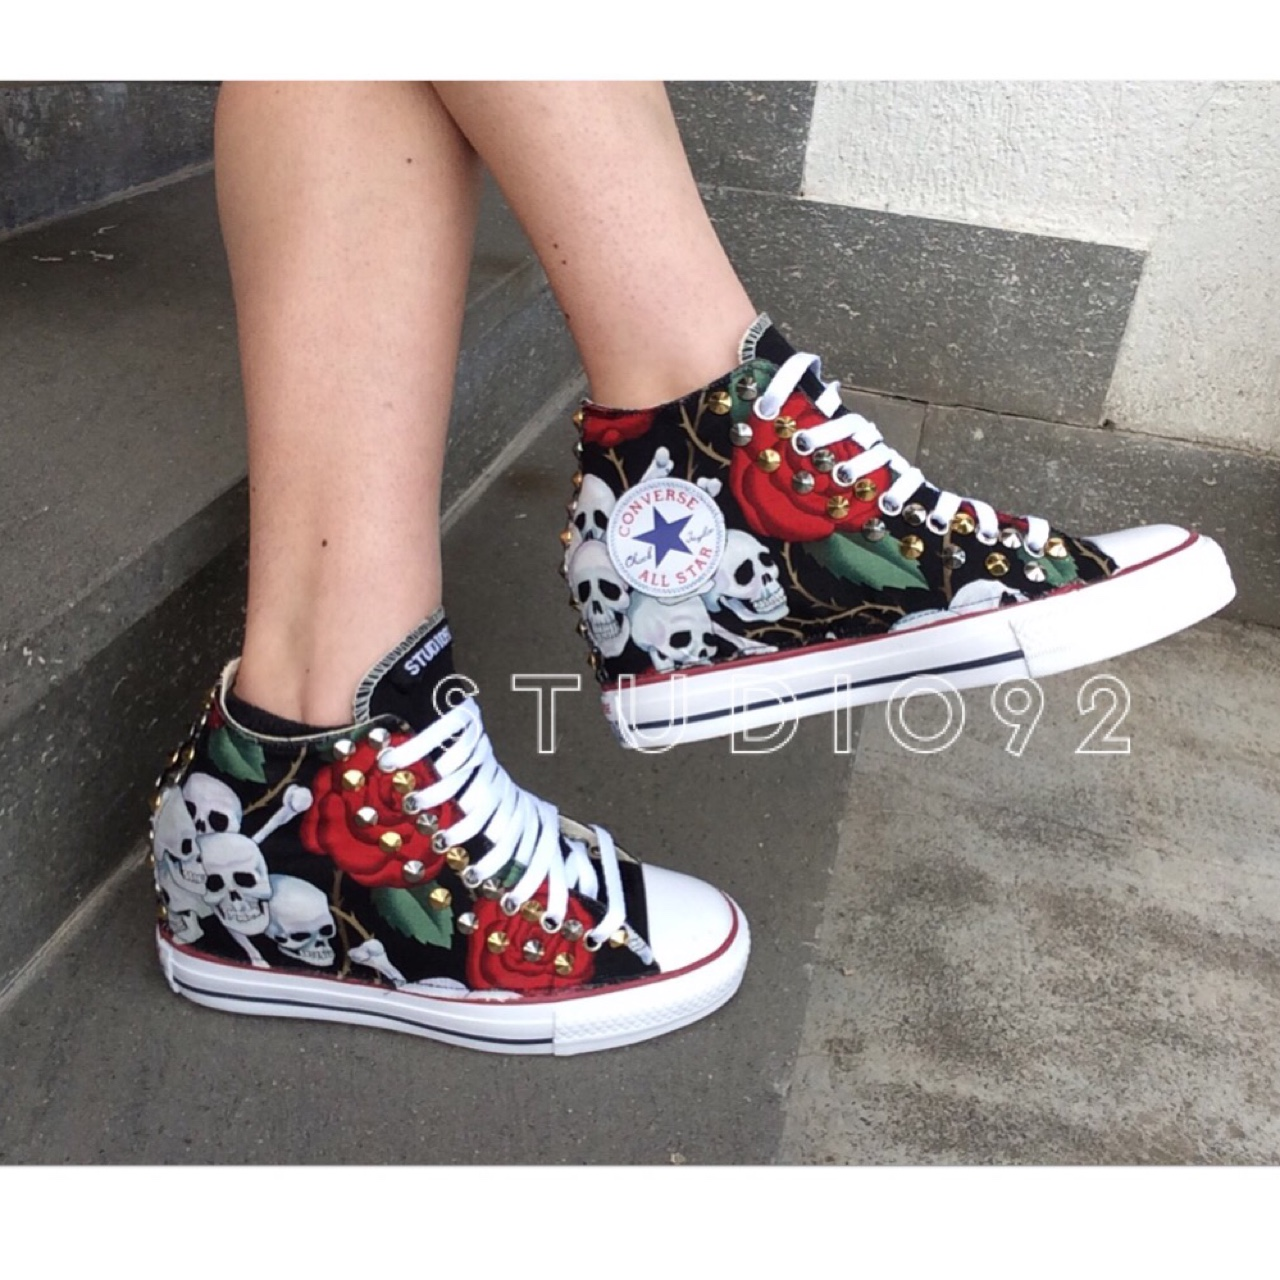 converse all star zeppa interna donna